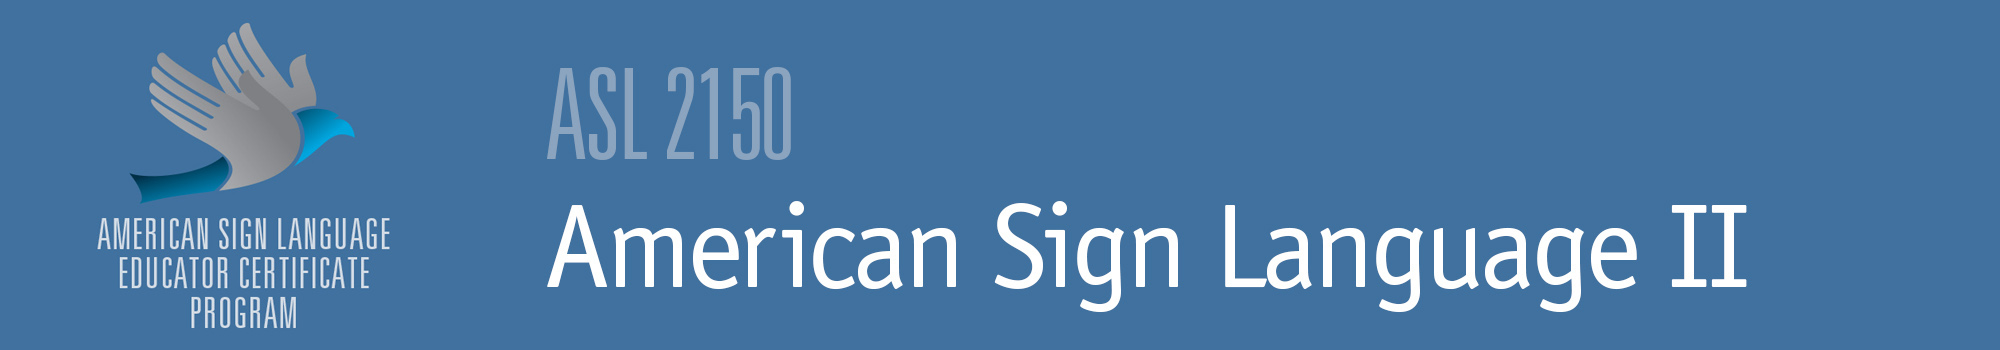 Example with ASL logo and text American Sign Language 2